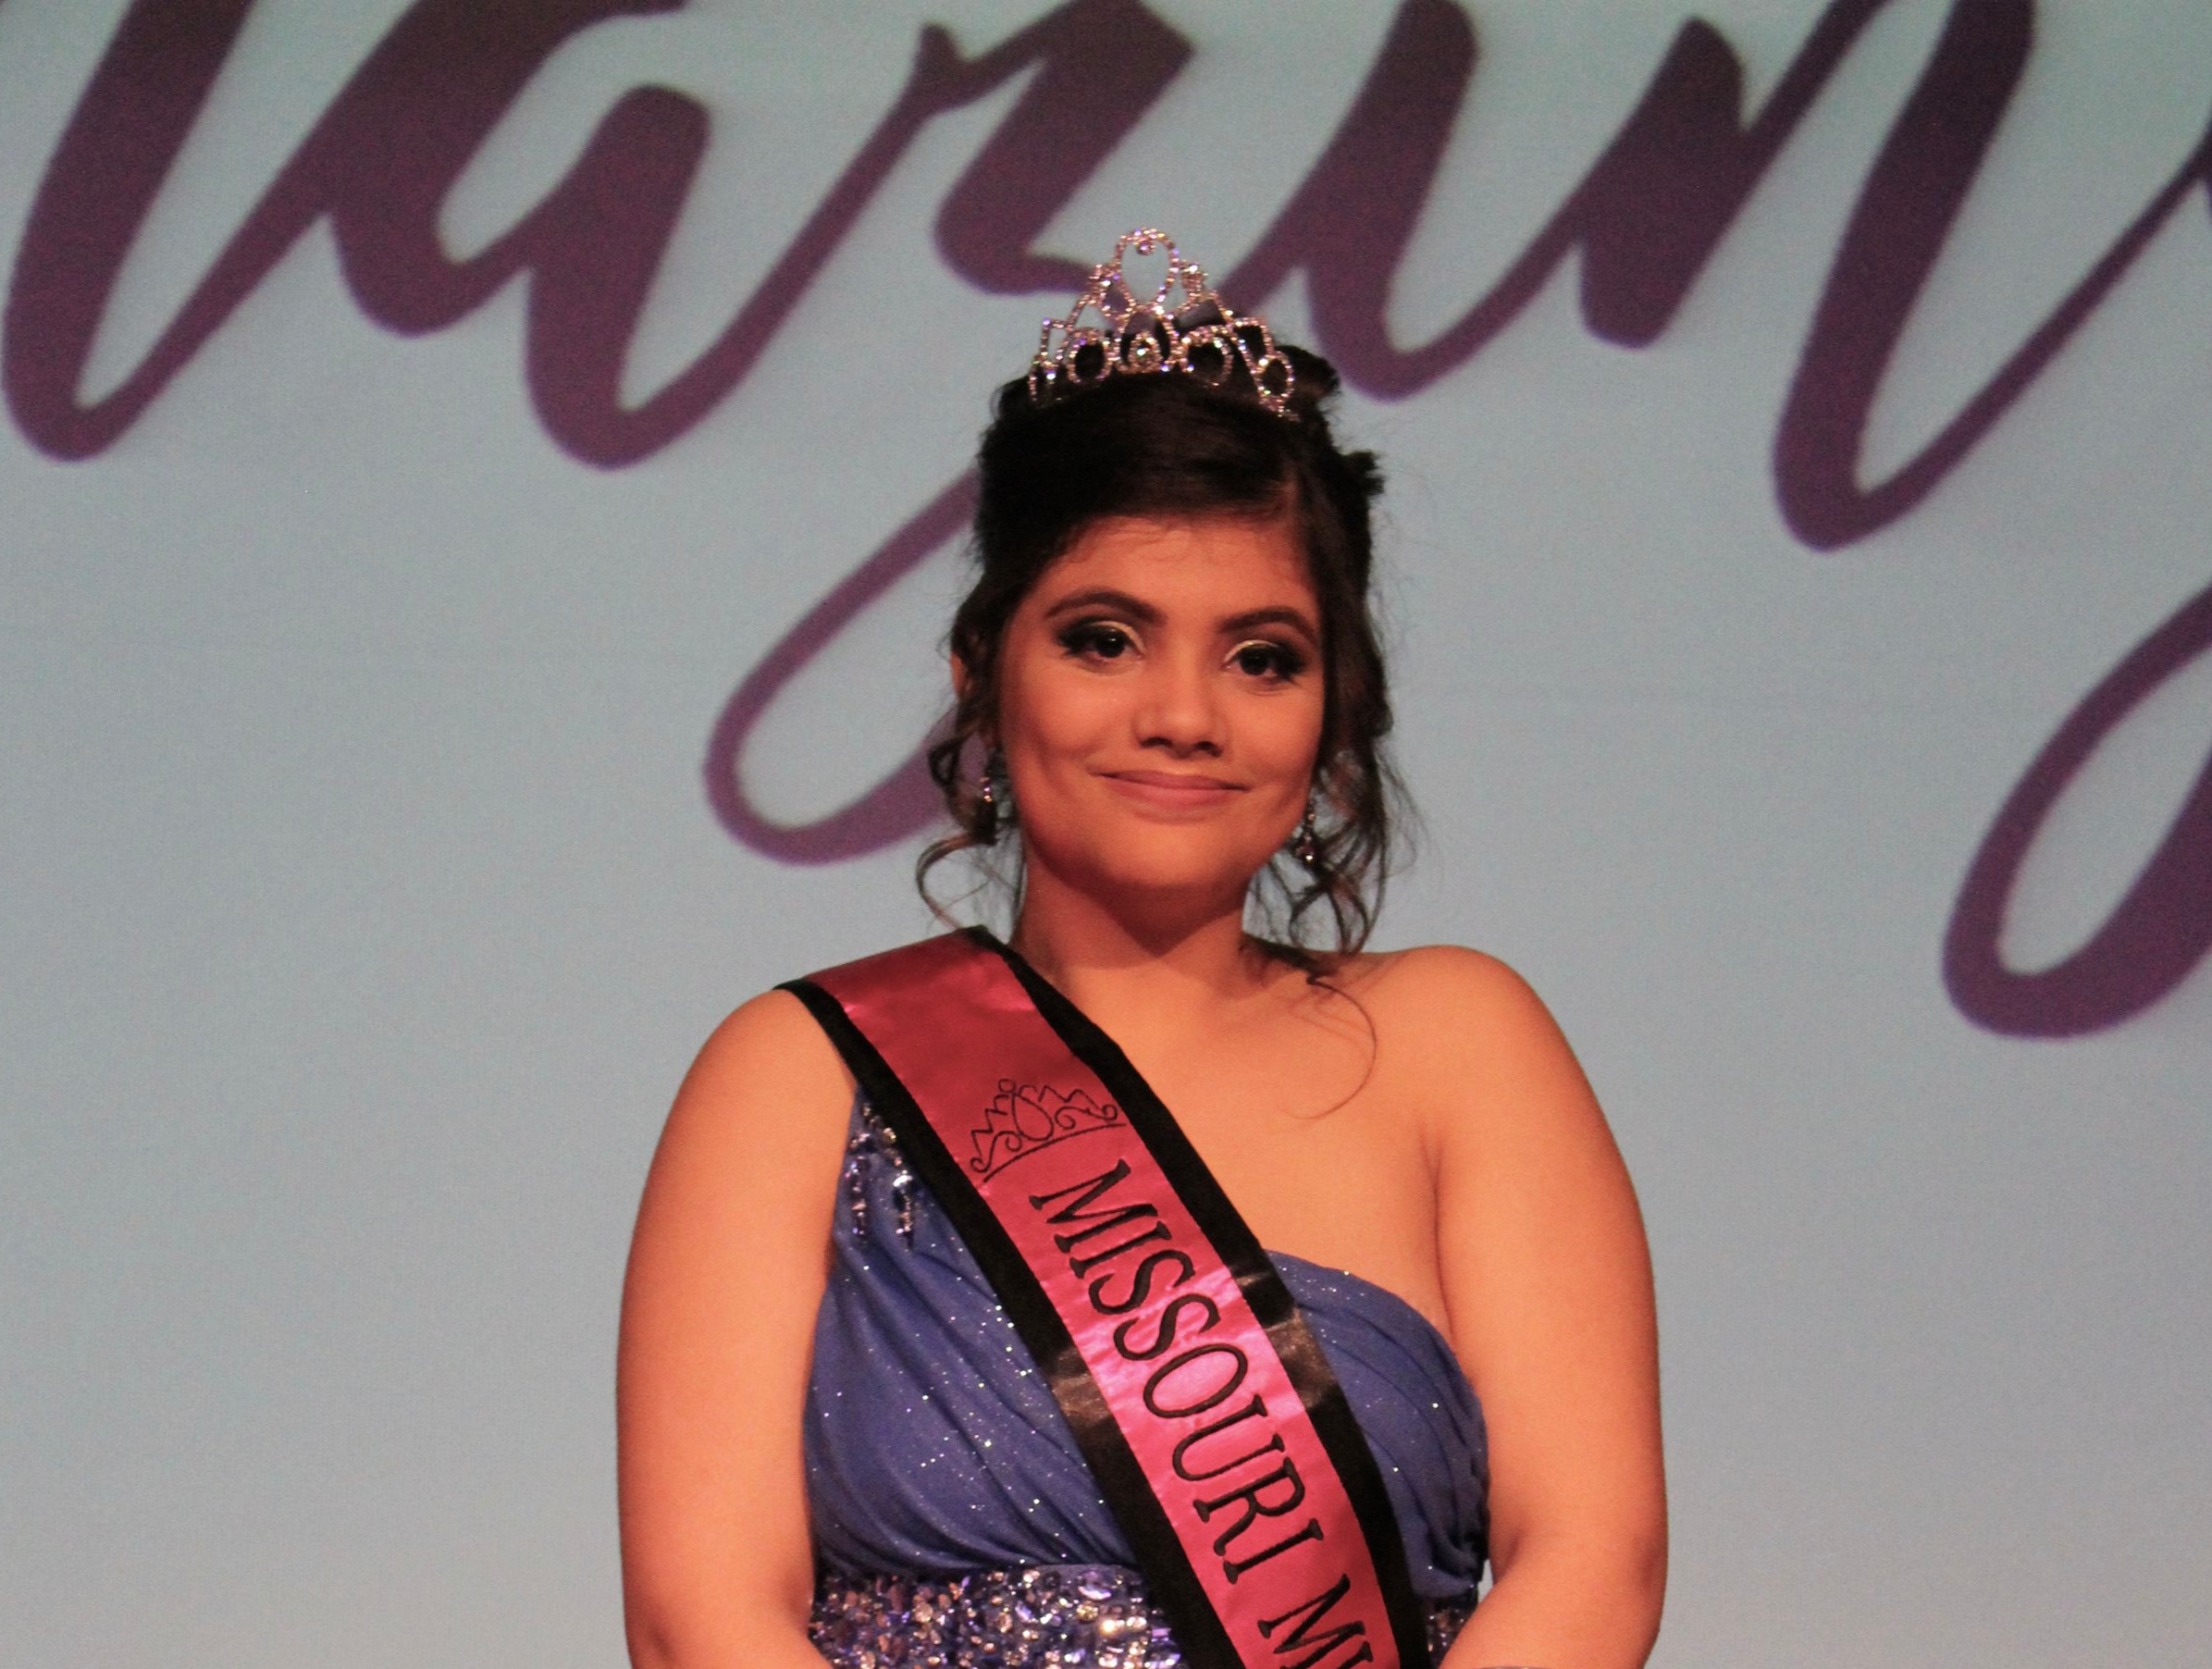 Missouri Miss Amazing Teen  |  Hannah Mayher   Click to read more about Hannah!